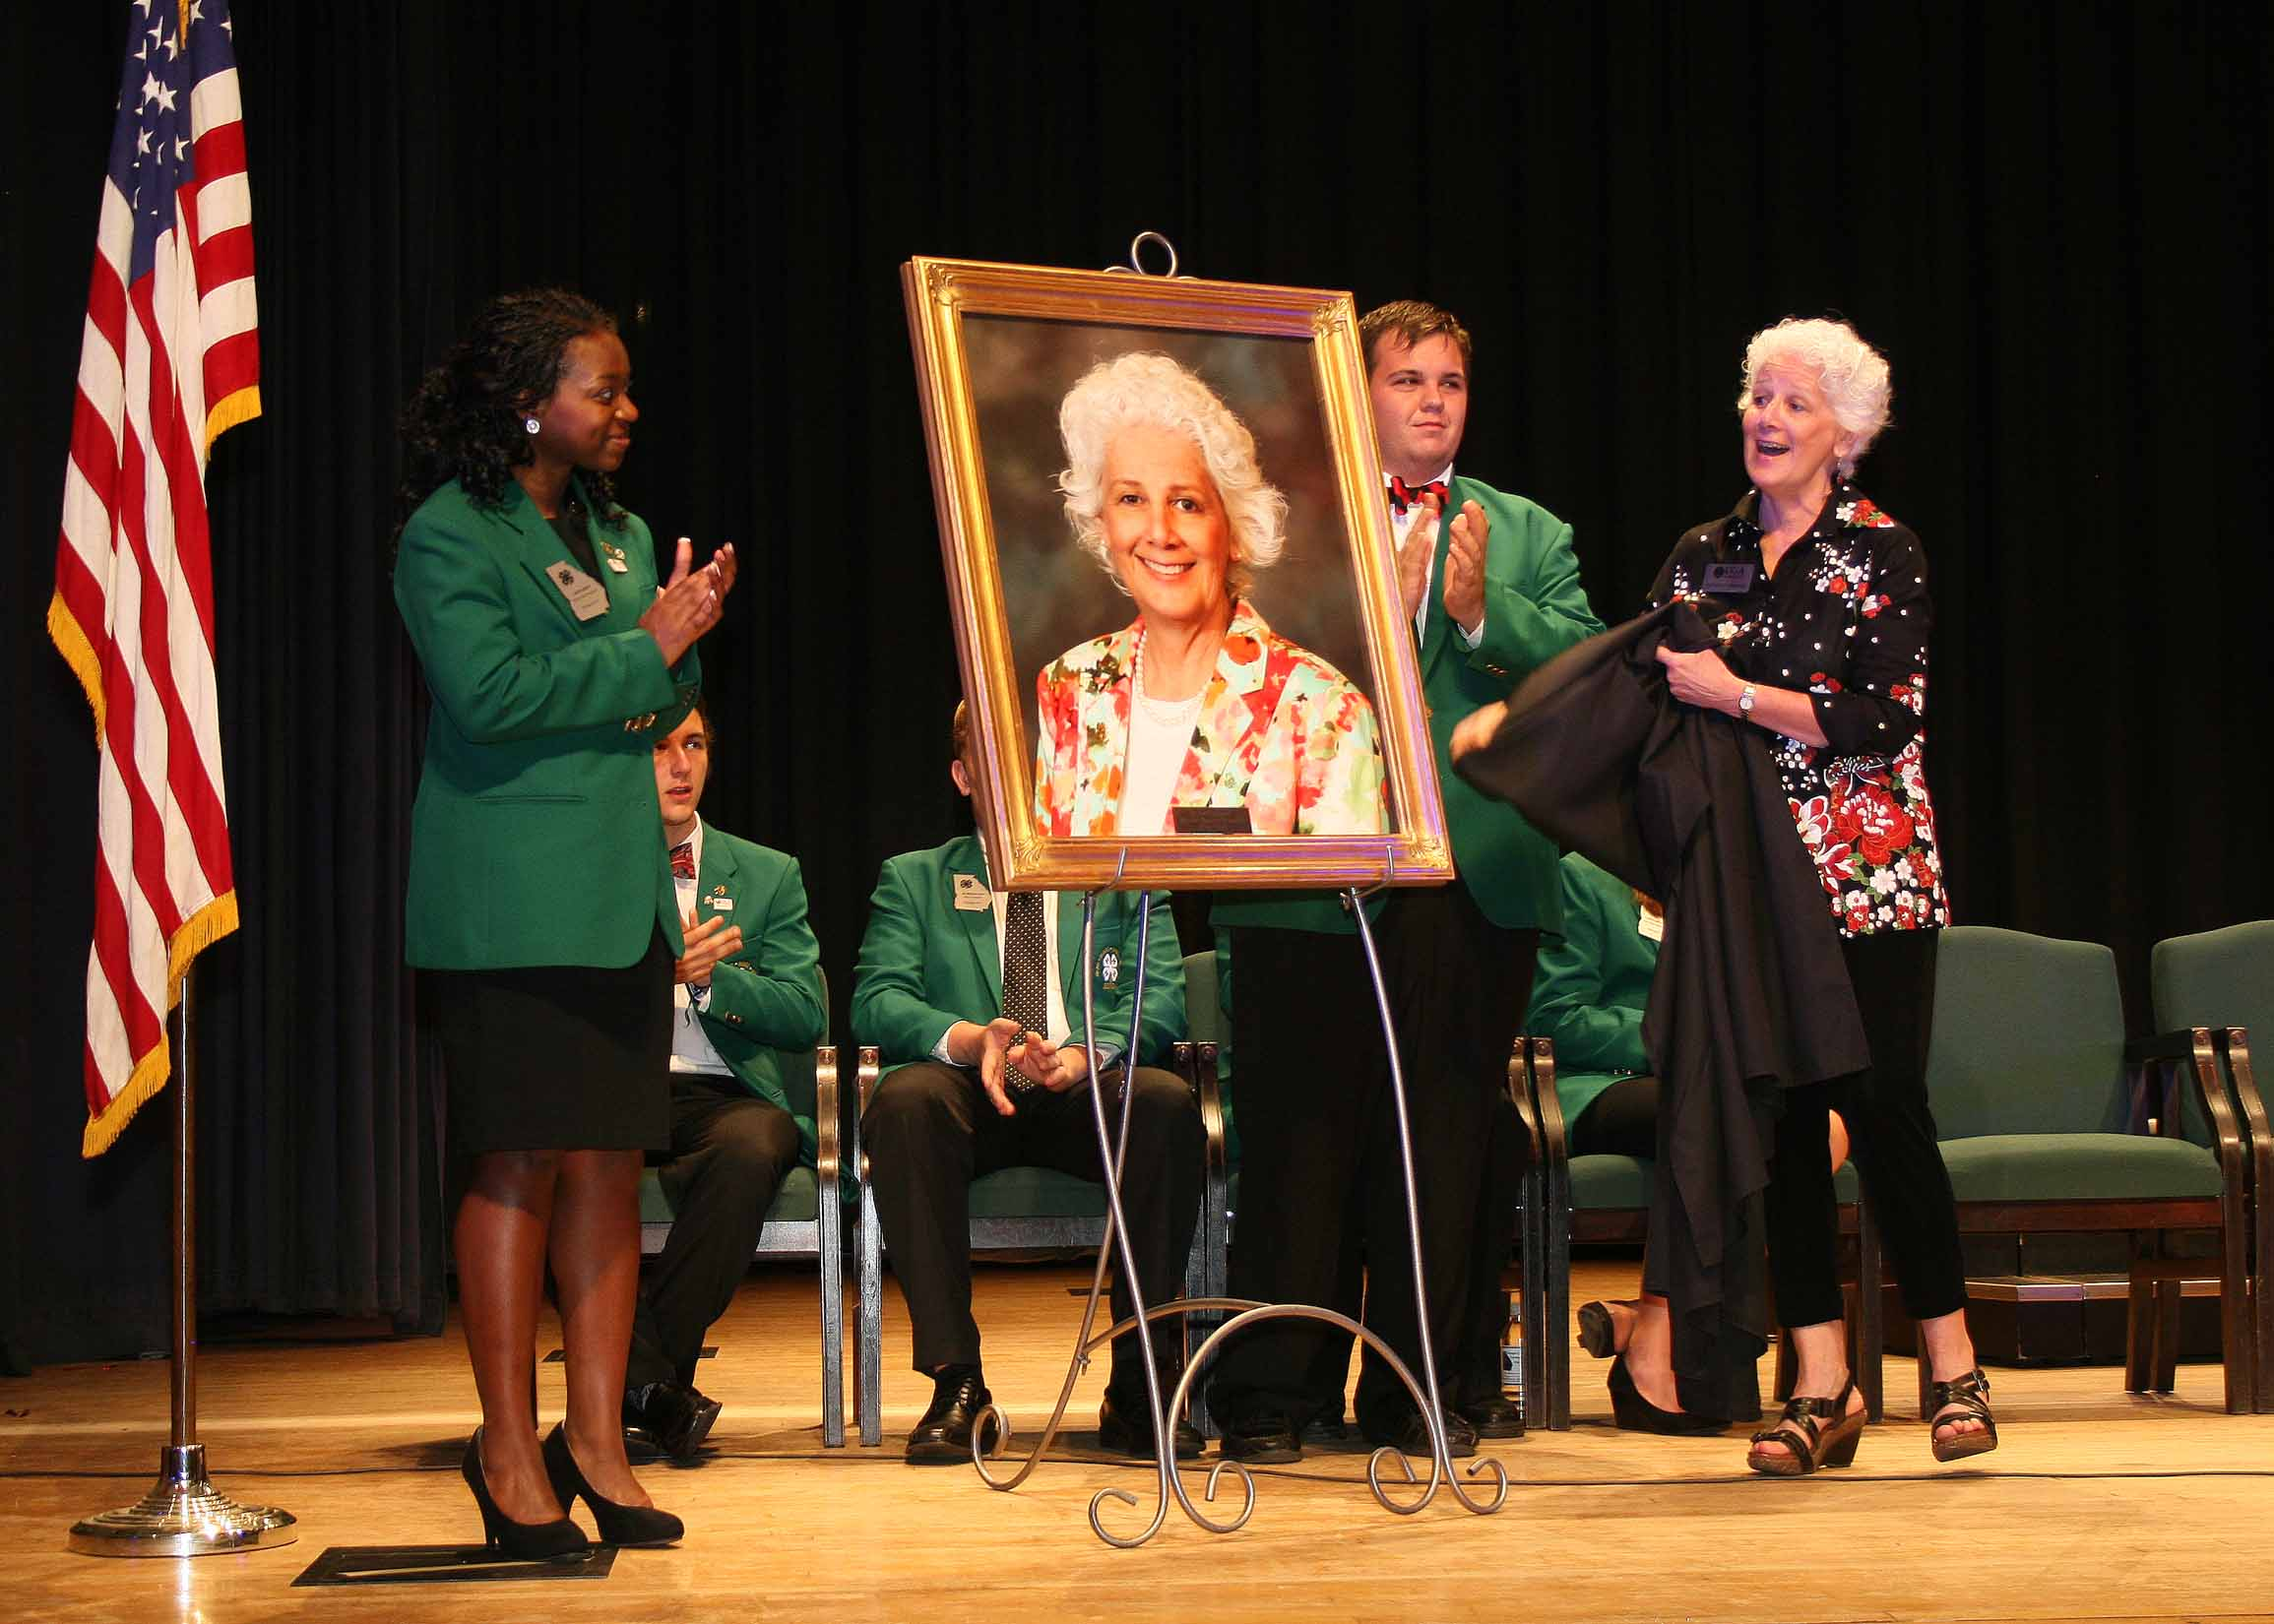 Georgia 4-H Club members honor Beverly Sparks, director of UGA Extension, at their 4-H Council meeting in June. Sparks, the first female leader of UGA Extension, will retire June 30. The 4-H club members presented Sparks with a portrait that will hang along side those of other past 4-H and UGA Extension leaders at Rock Eagle 4-H Center in Eatonton.